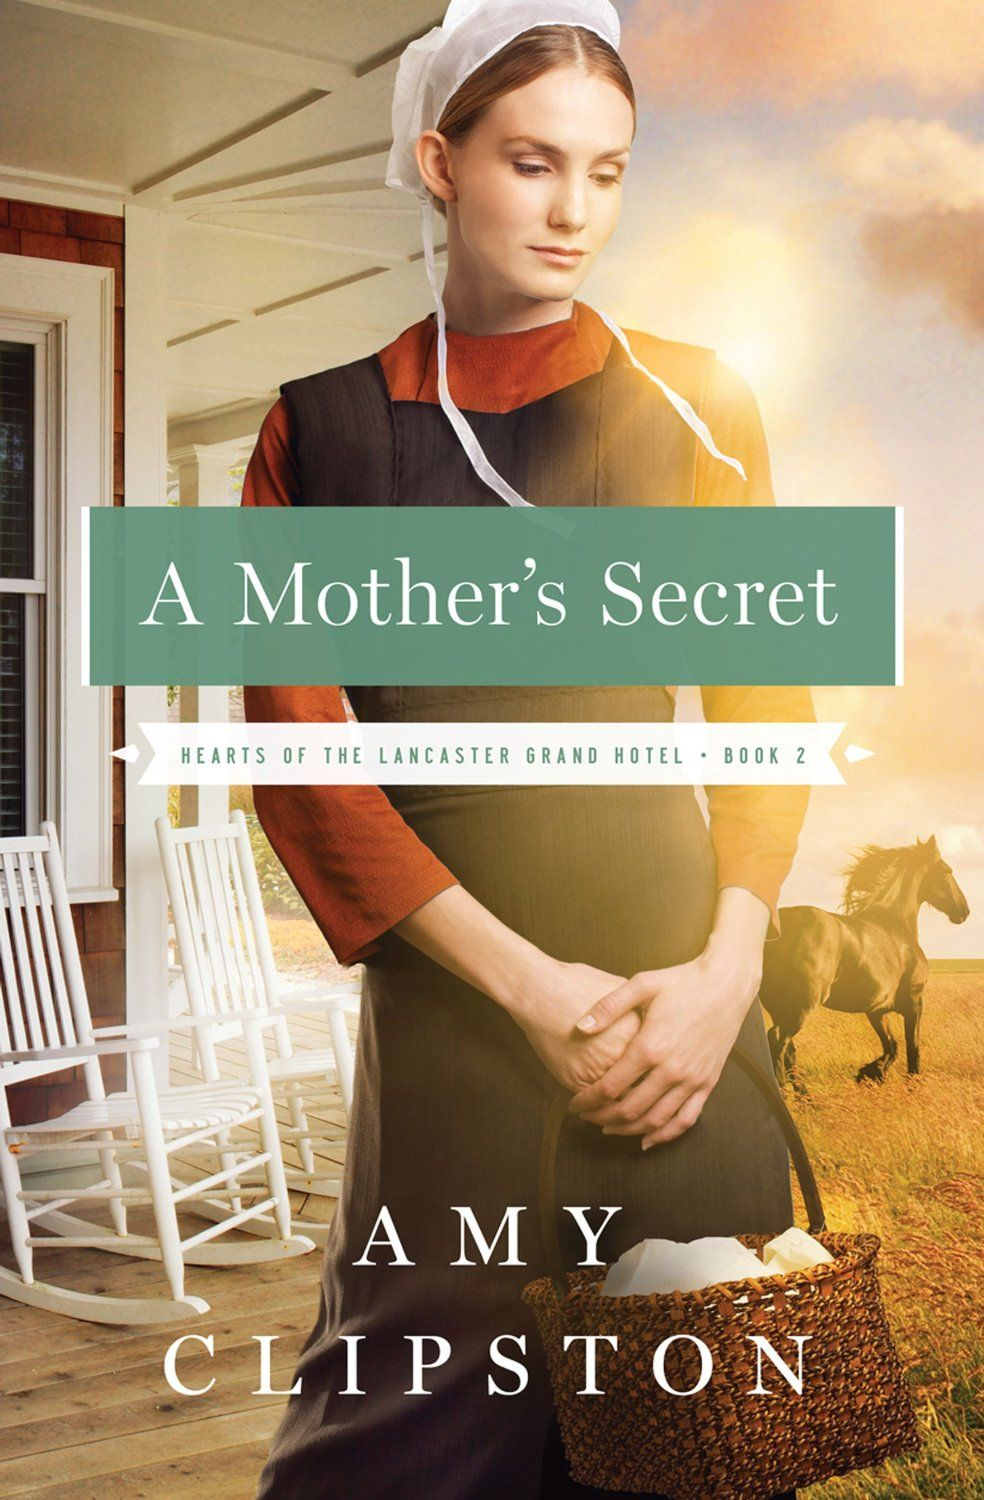 A Mother's Secret (Hearts of the Lancaster Grand Hotel #2) by Amy Clipston. Thirty-one-year-old Carolyn Lapp has never been married—but she's been a mother for fifteen years. In a community with strict standards and a long memory, Carolyn knows she might never find a man who will have her and her son, Benjamin. Carolyn's family tries to marry her off to a widower with a daughter who needs a mother. A marriage of convenience, yet Carolyn knows what she really wants ia a marriage for love.